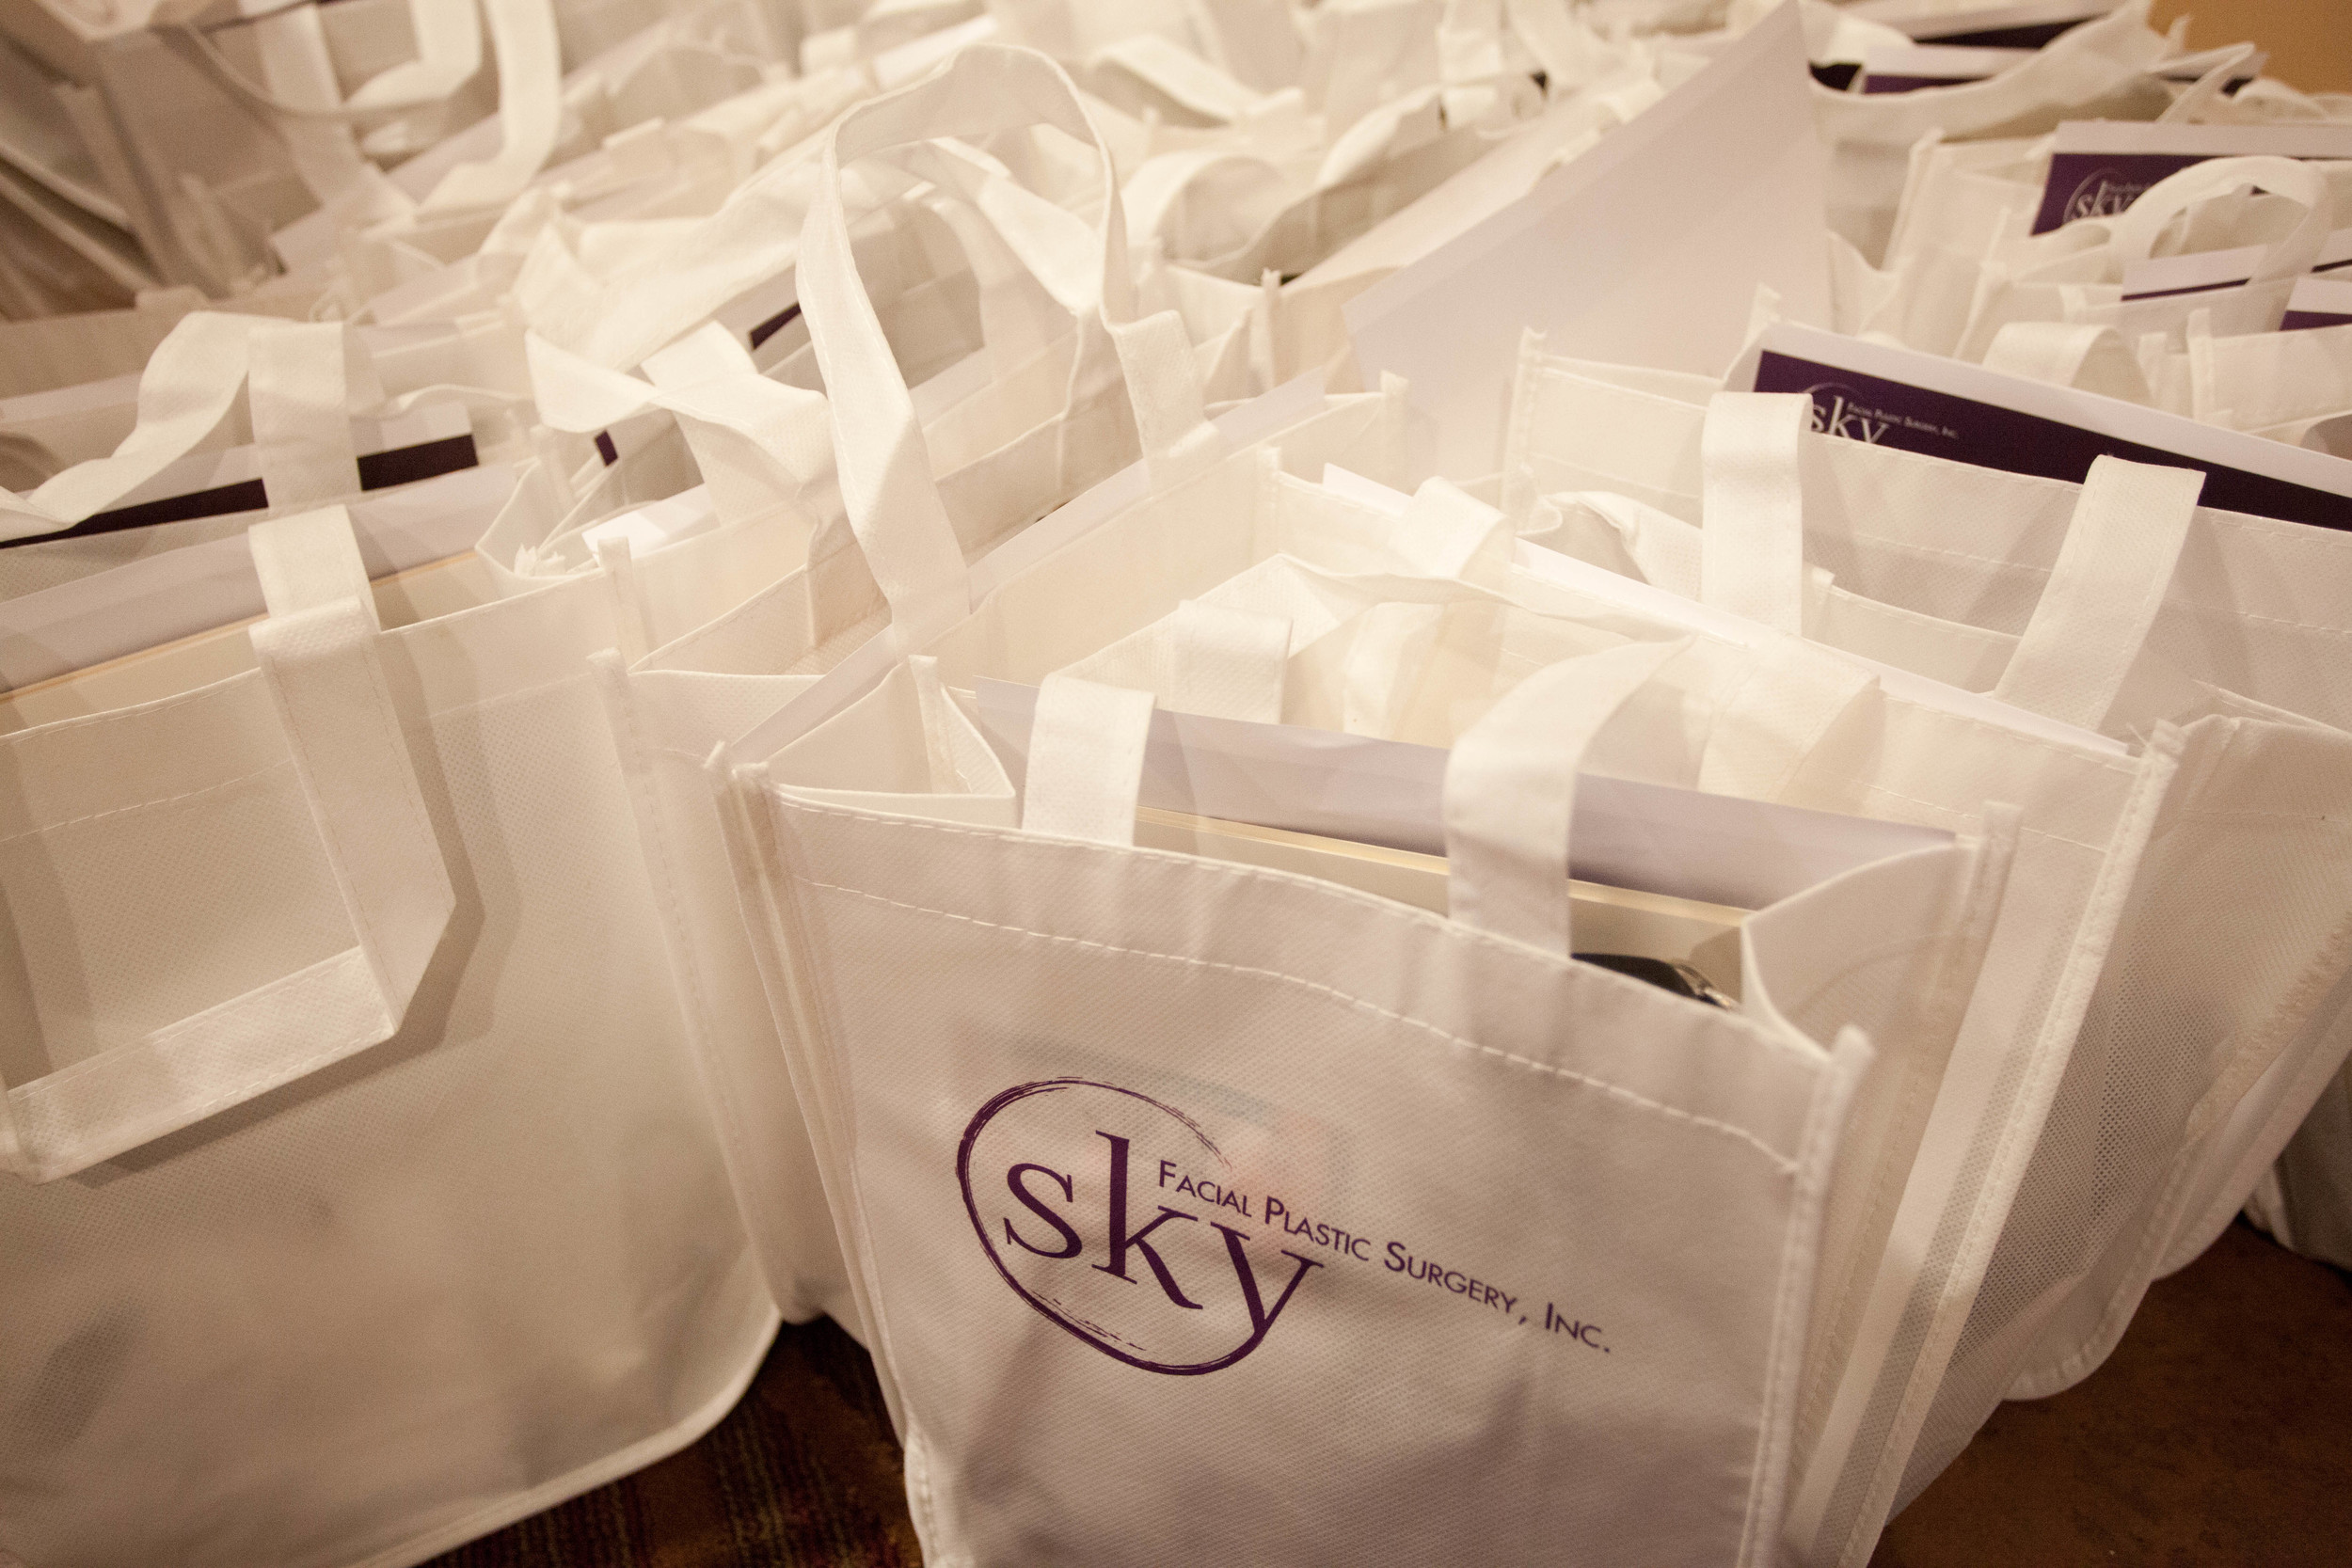 PHOTO: Gift bags with SKY's logo waiting for pick-up.